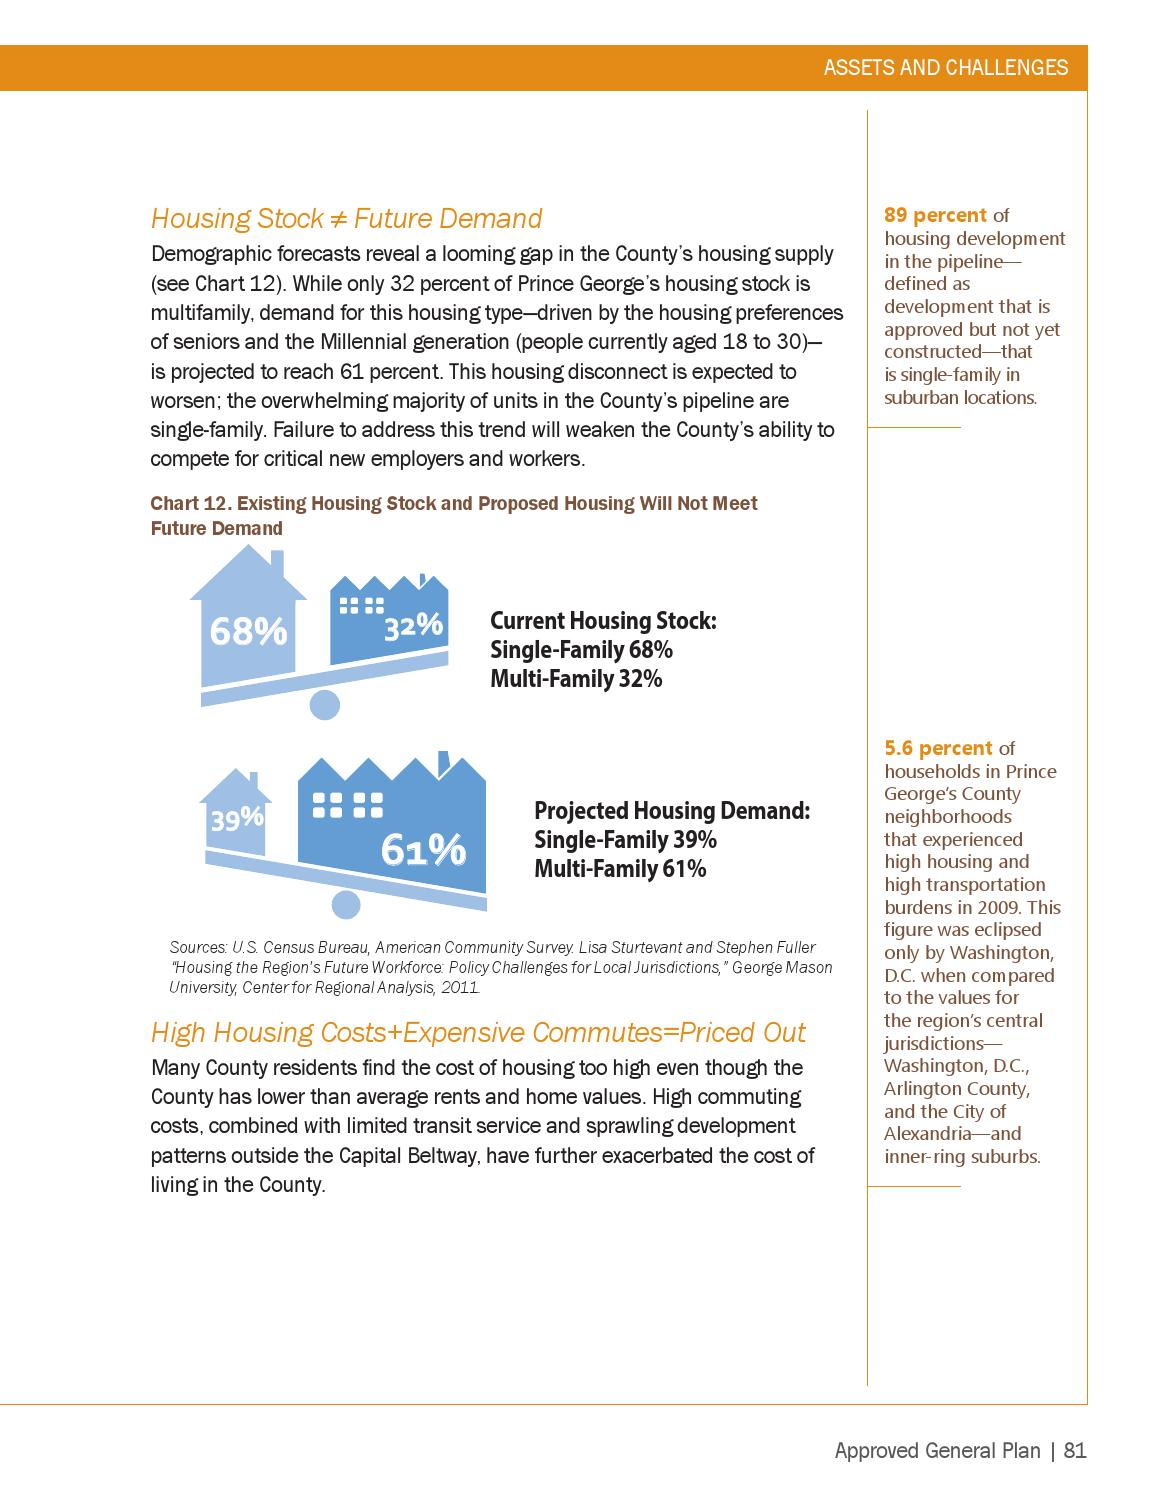 plan 2035 approved general plan by maryland-national capital park & planning  commission - issuu